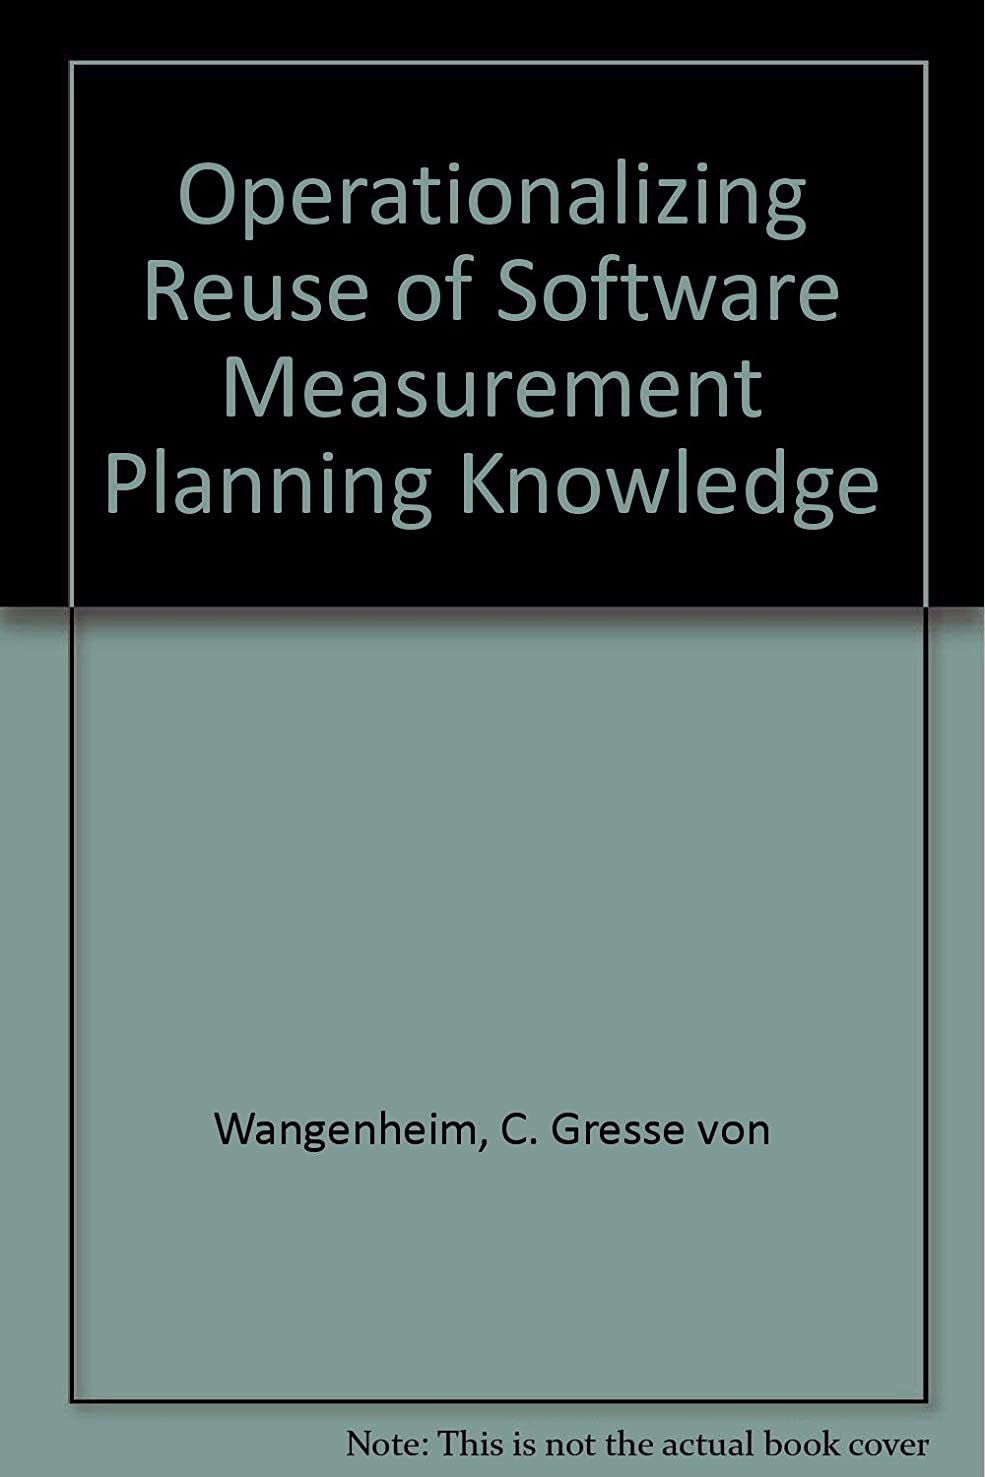 Operationalizing Reuse of Software Measurement Planning Knowledge